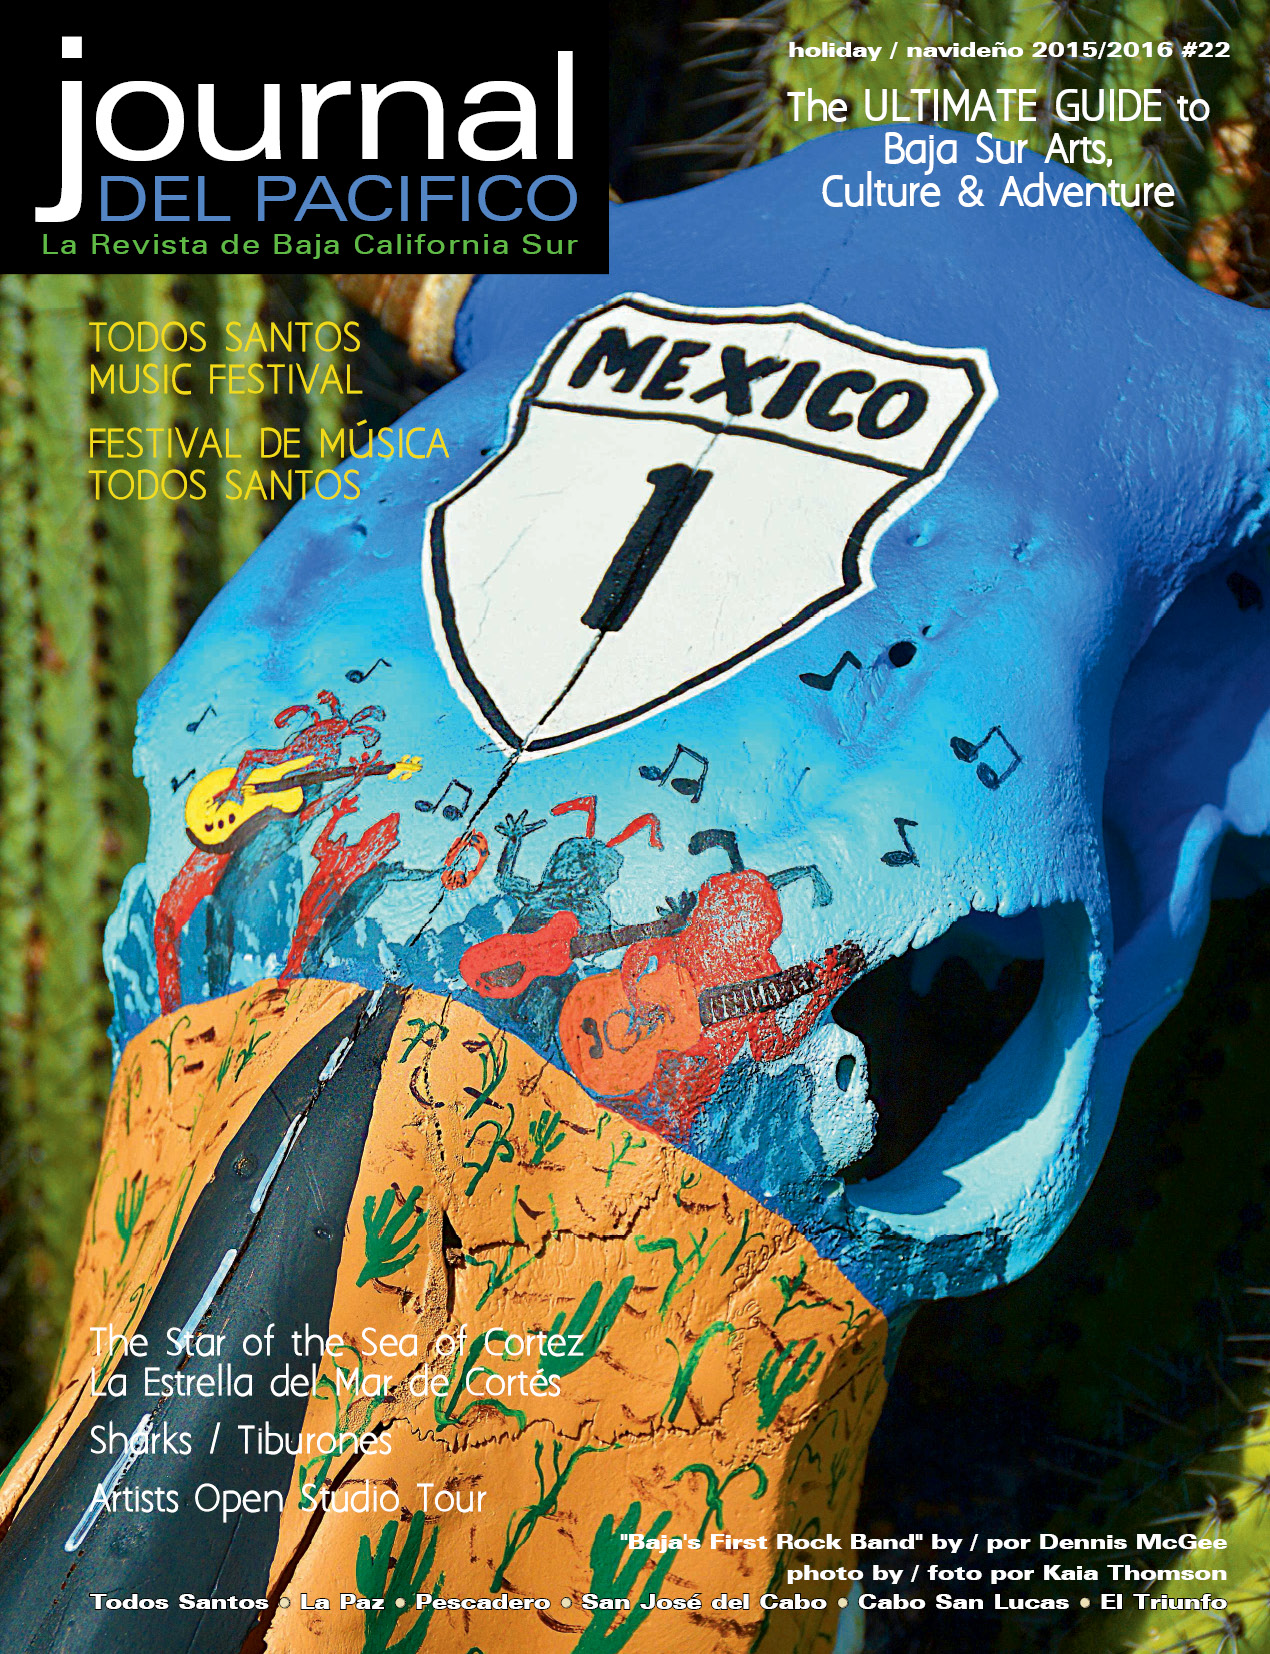 Holiday 2015 Issue of Journal del Pacifico